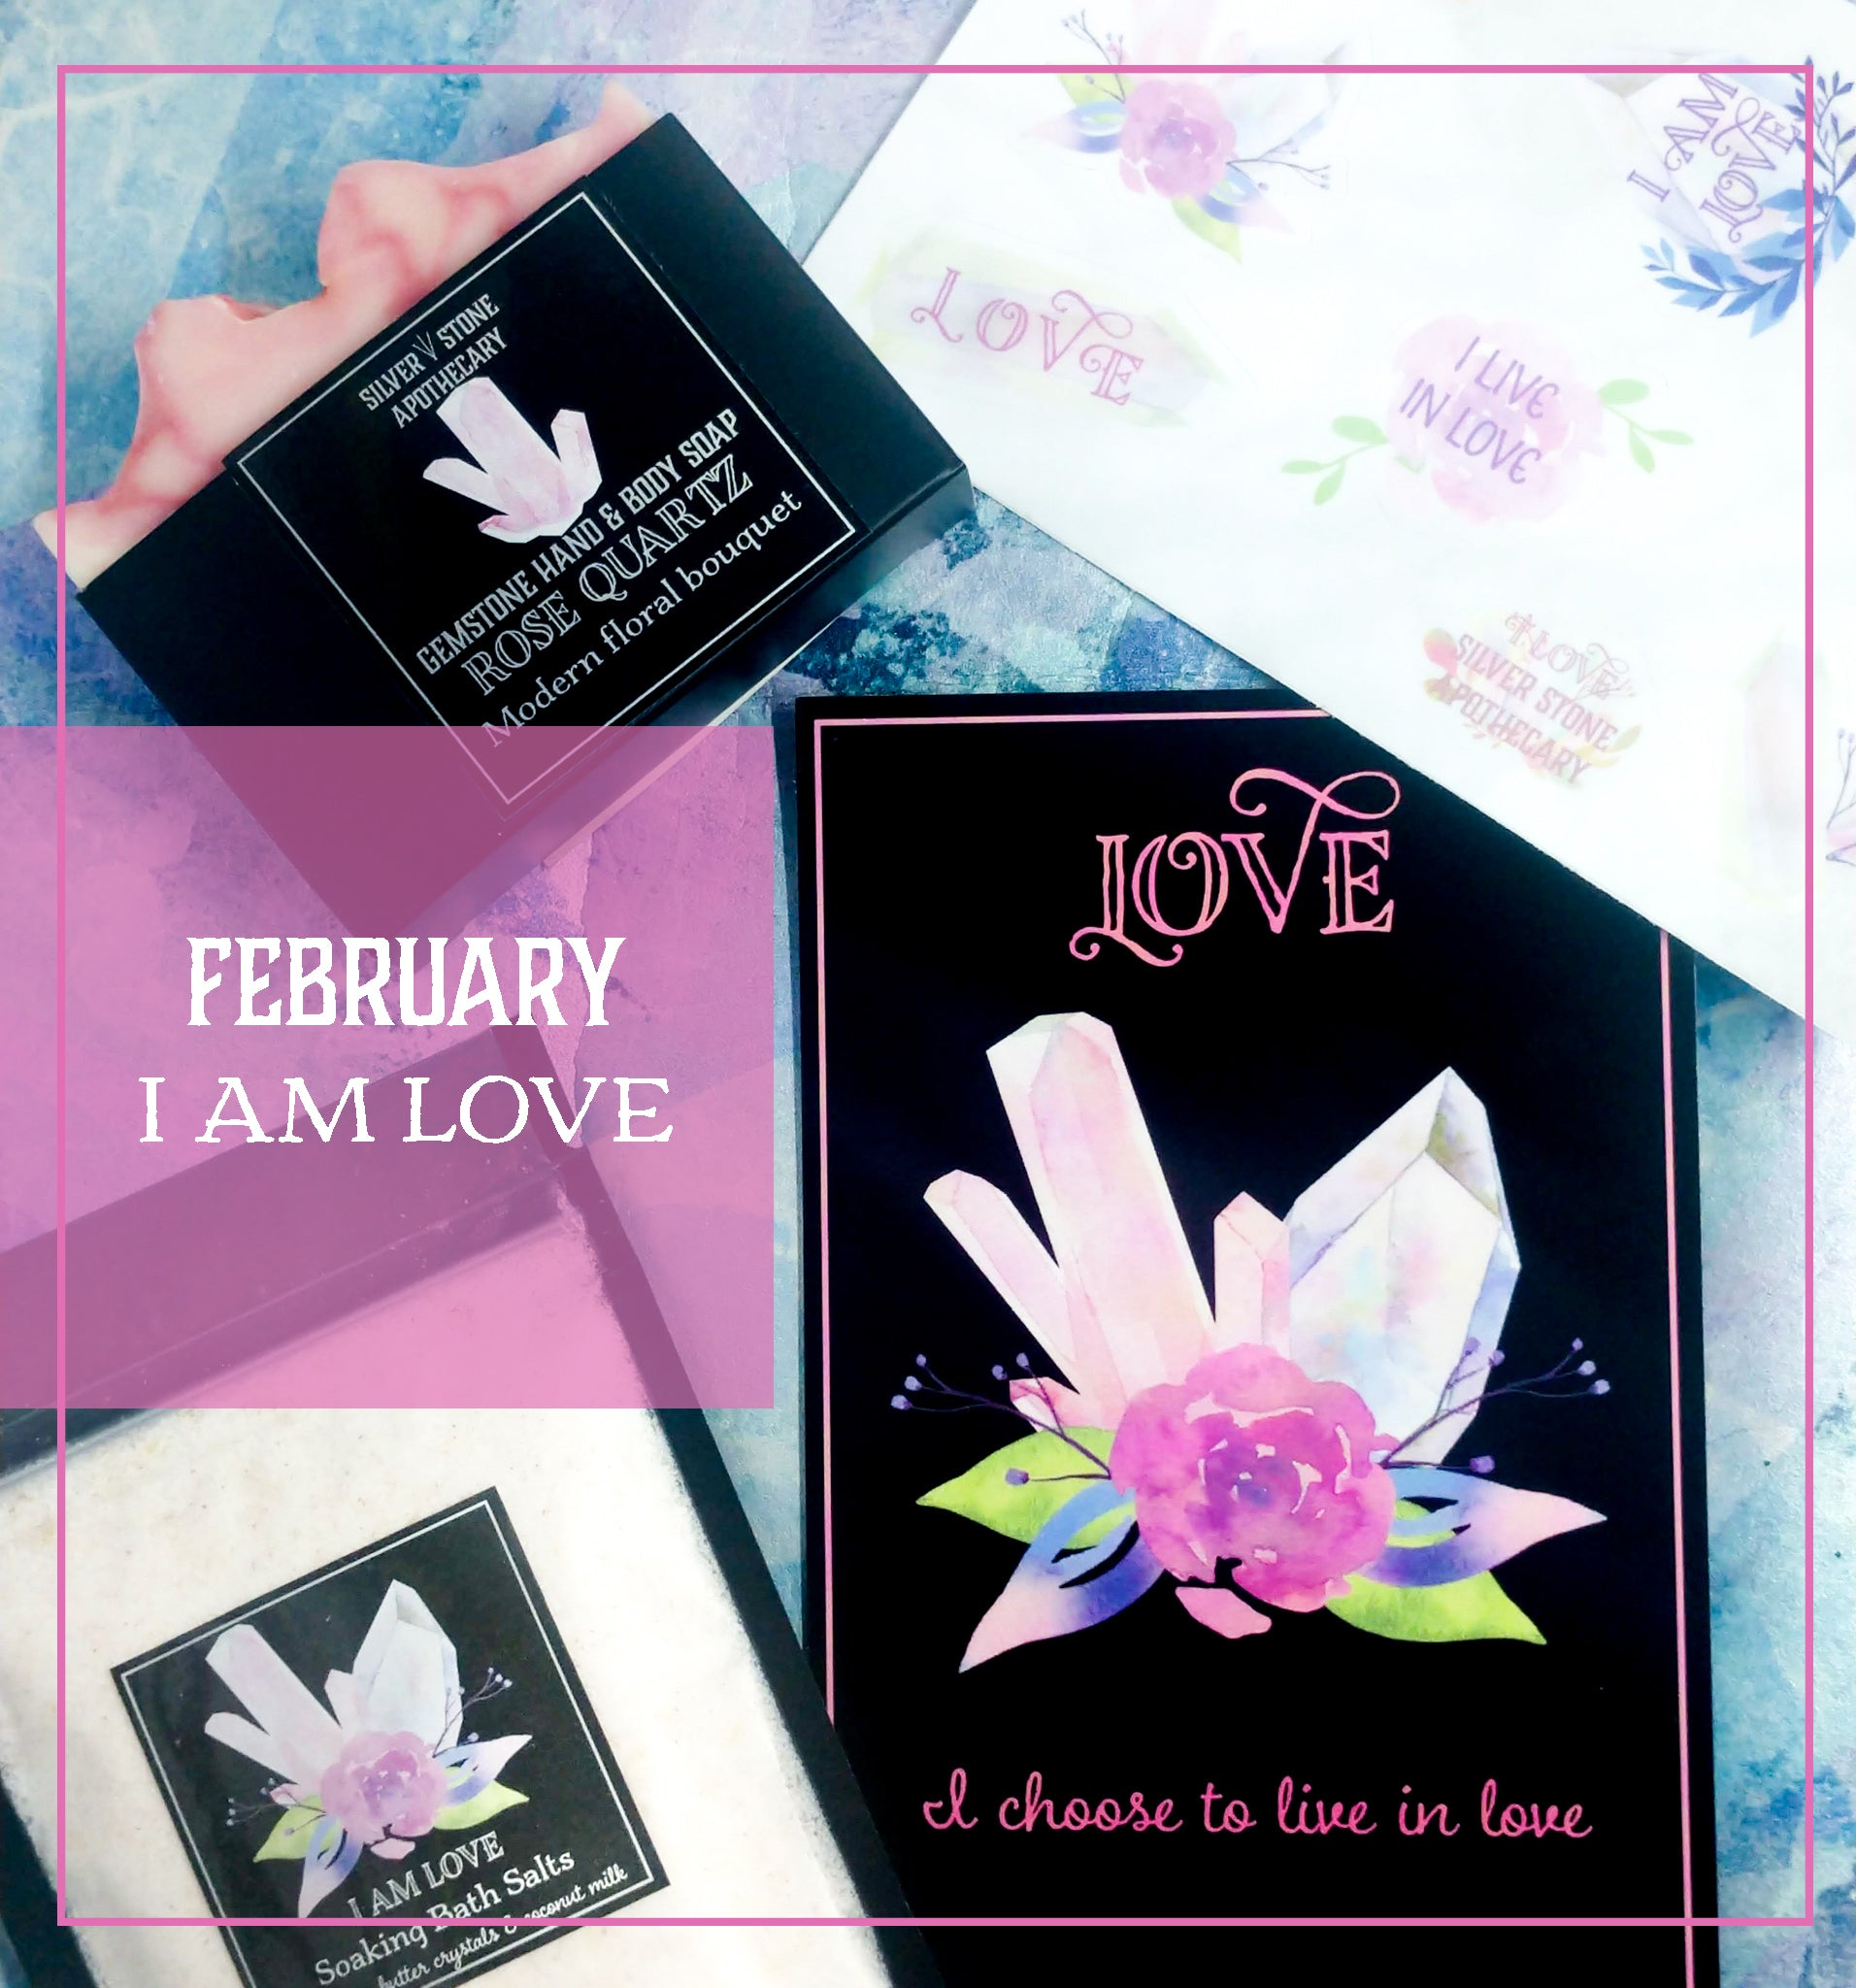 FEBRUARY BOX: I AM LOVE